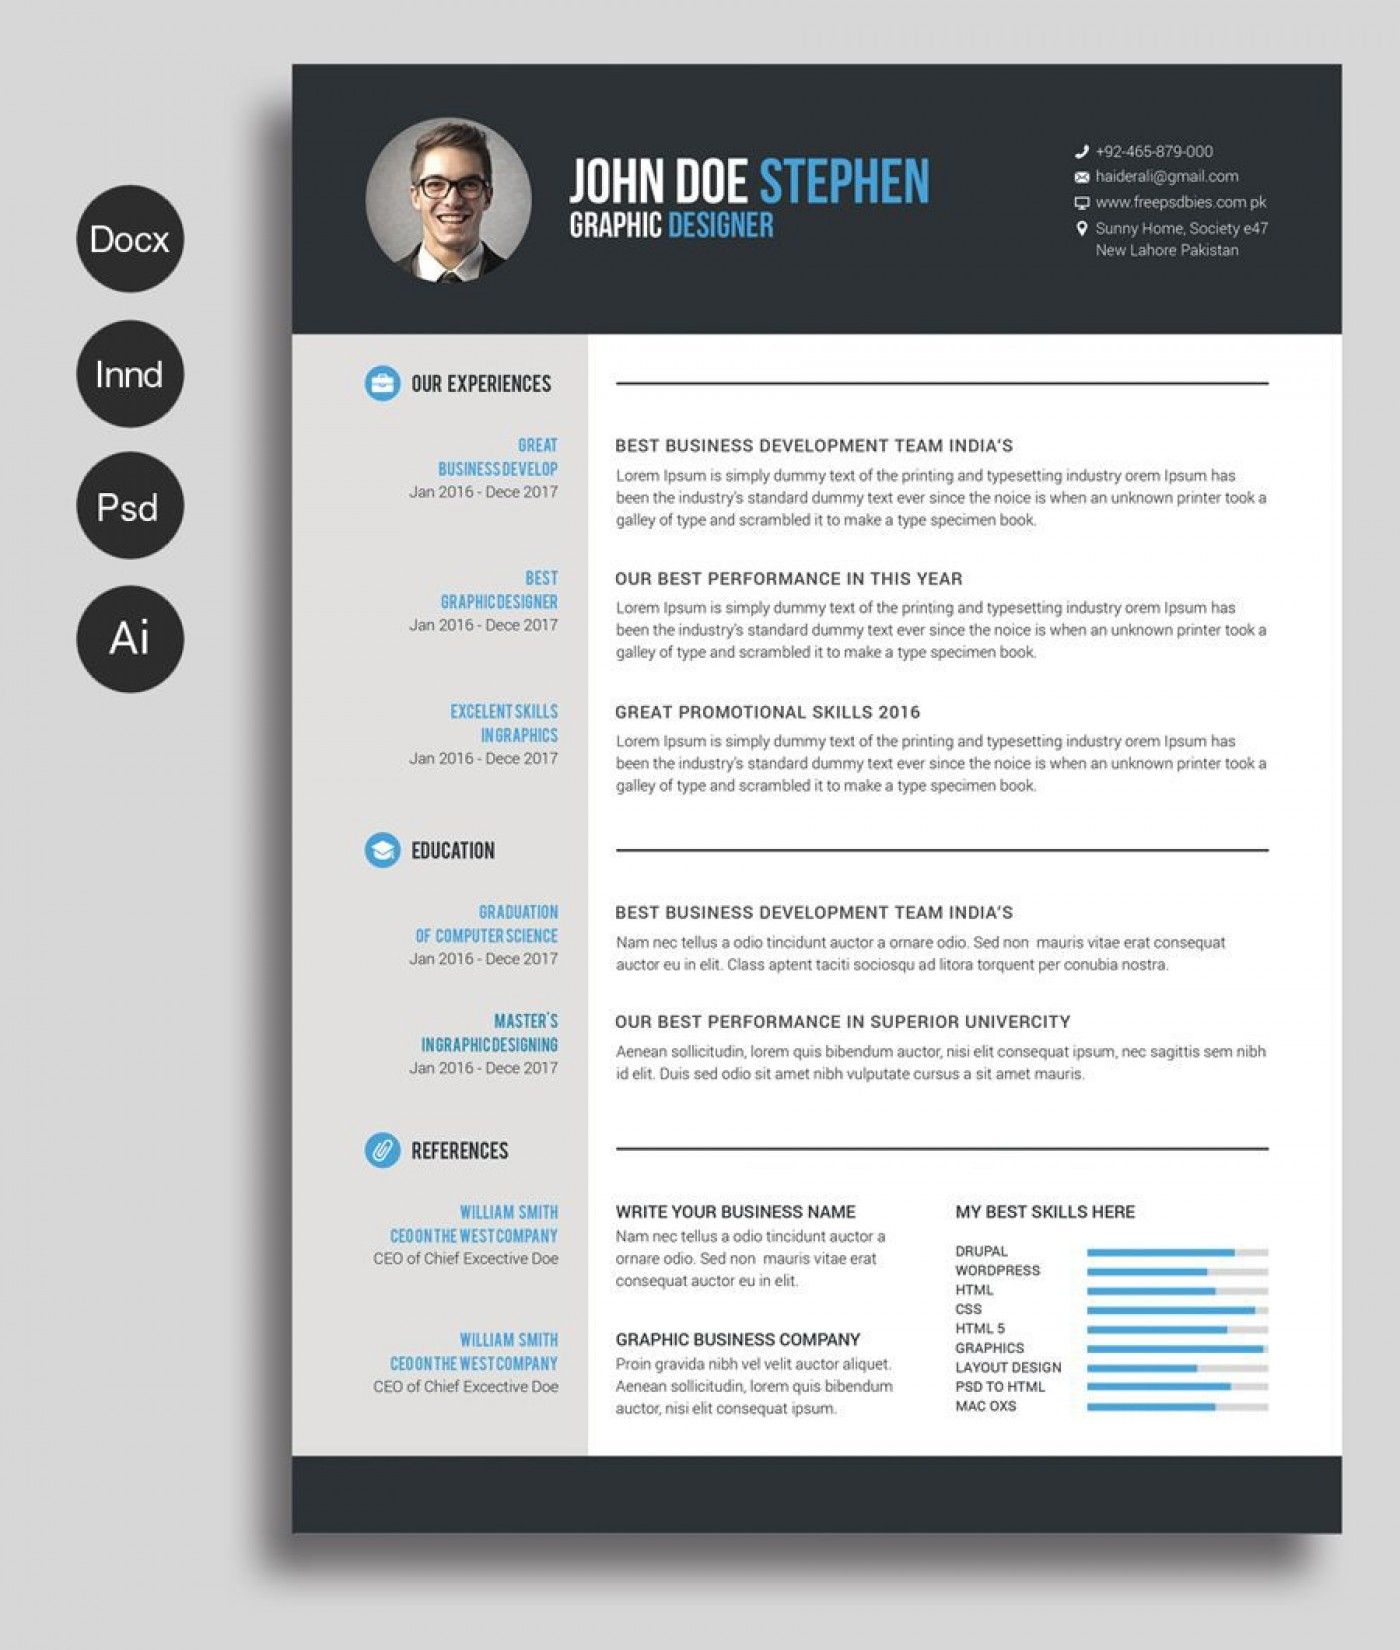 000 Phenomenal Resume Template M Word Free Highest Clarity  Modern Microsoft Download 2010 Cv With Picture1400